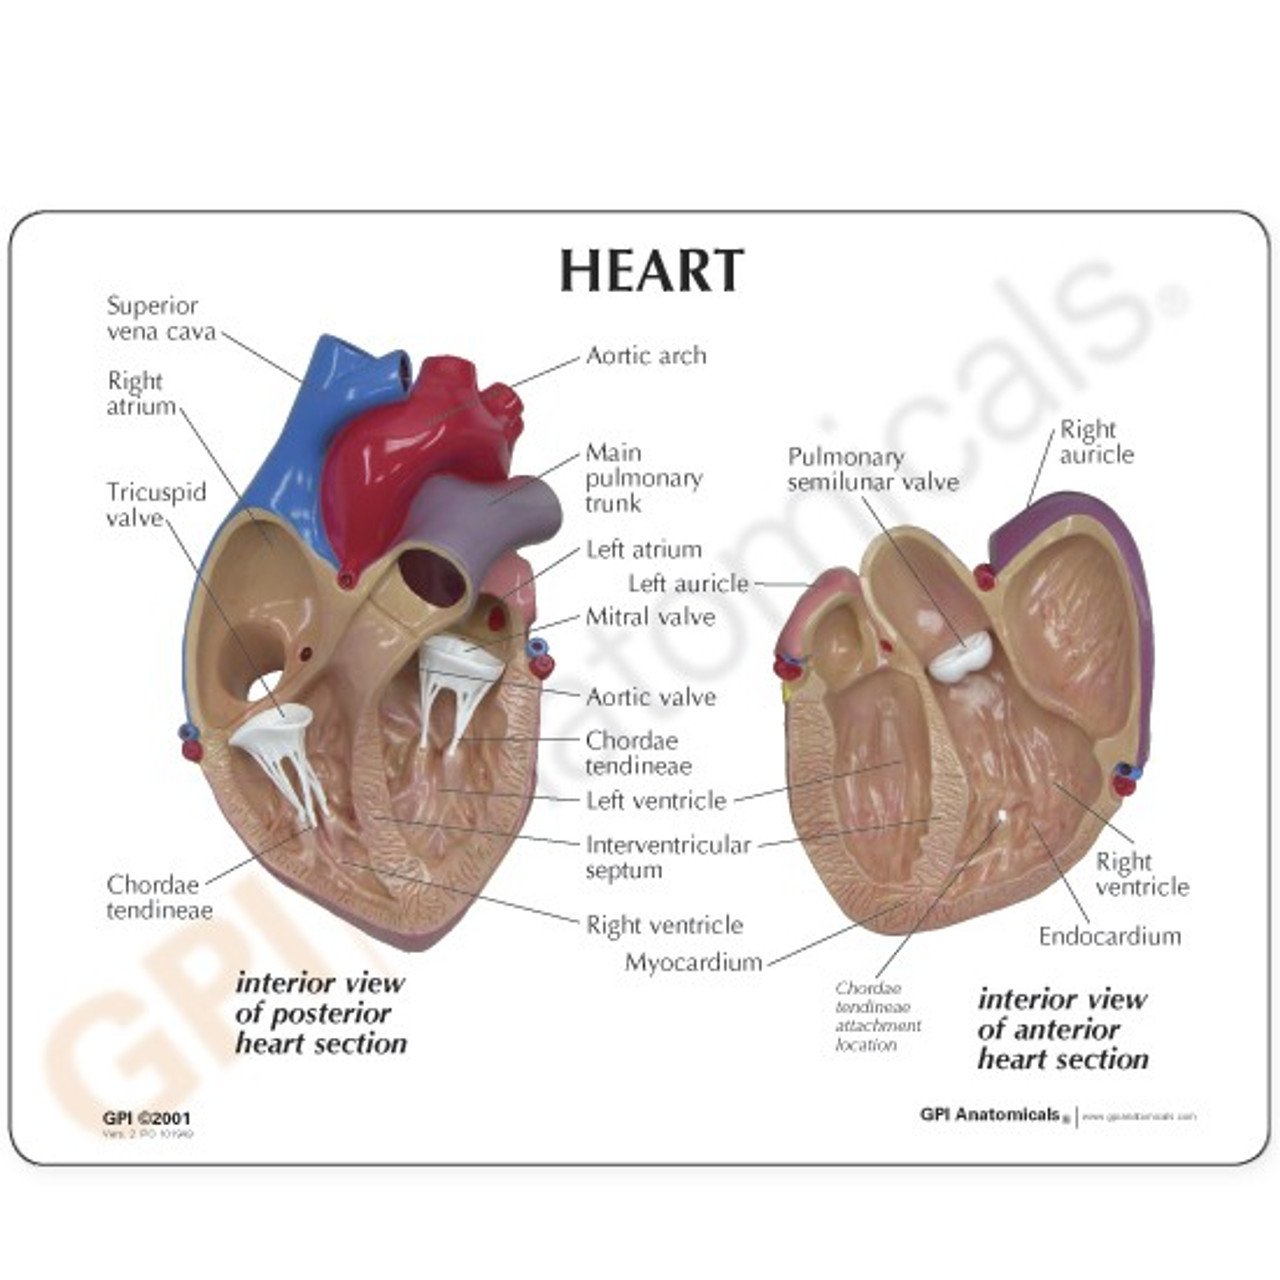 Heart Model Description Card